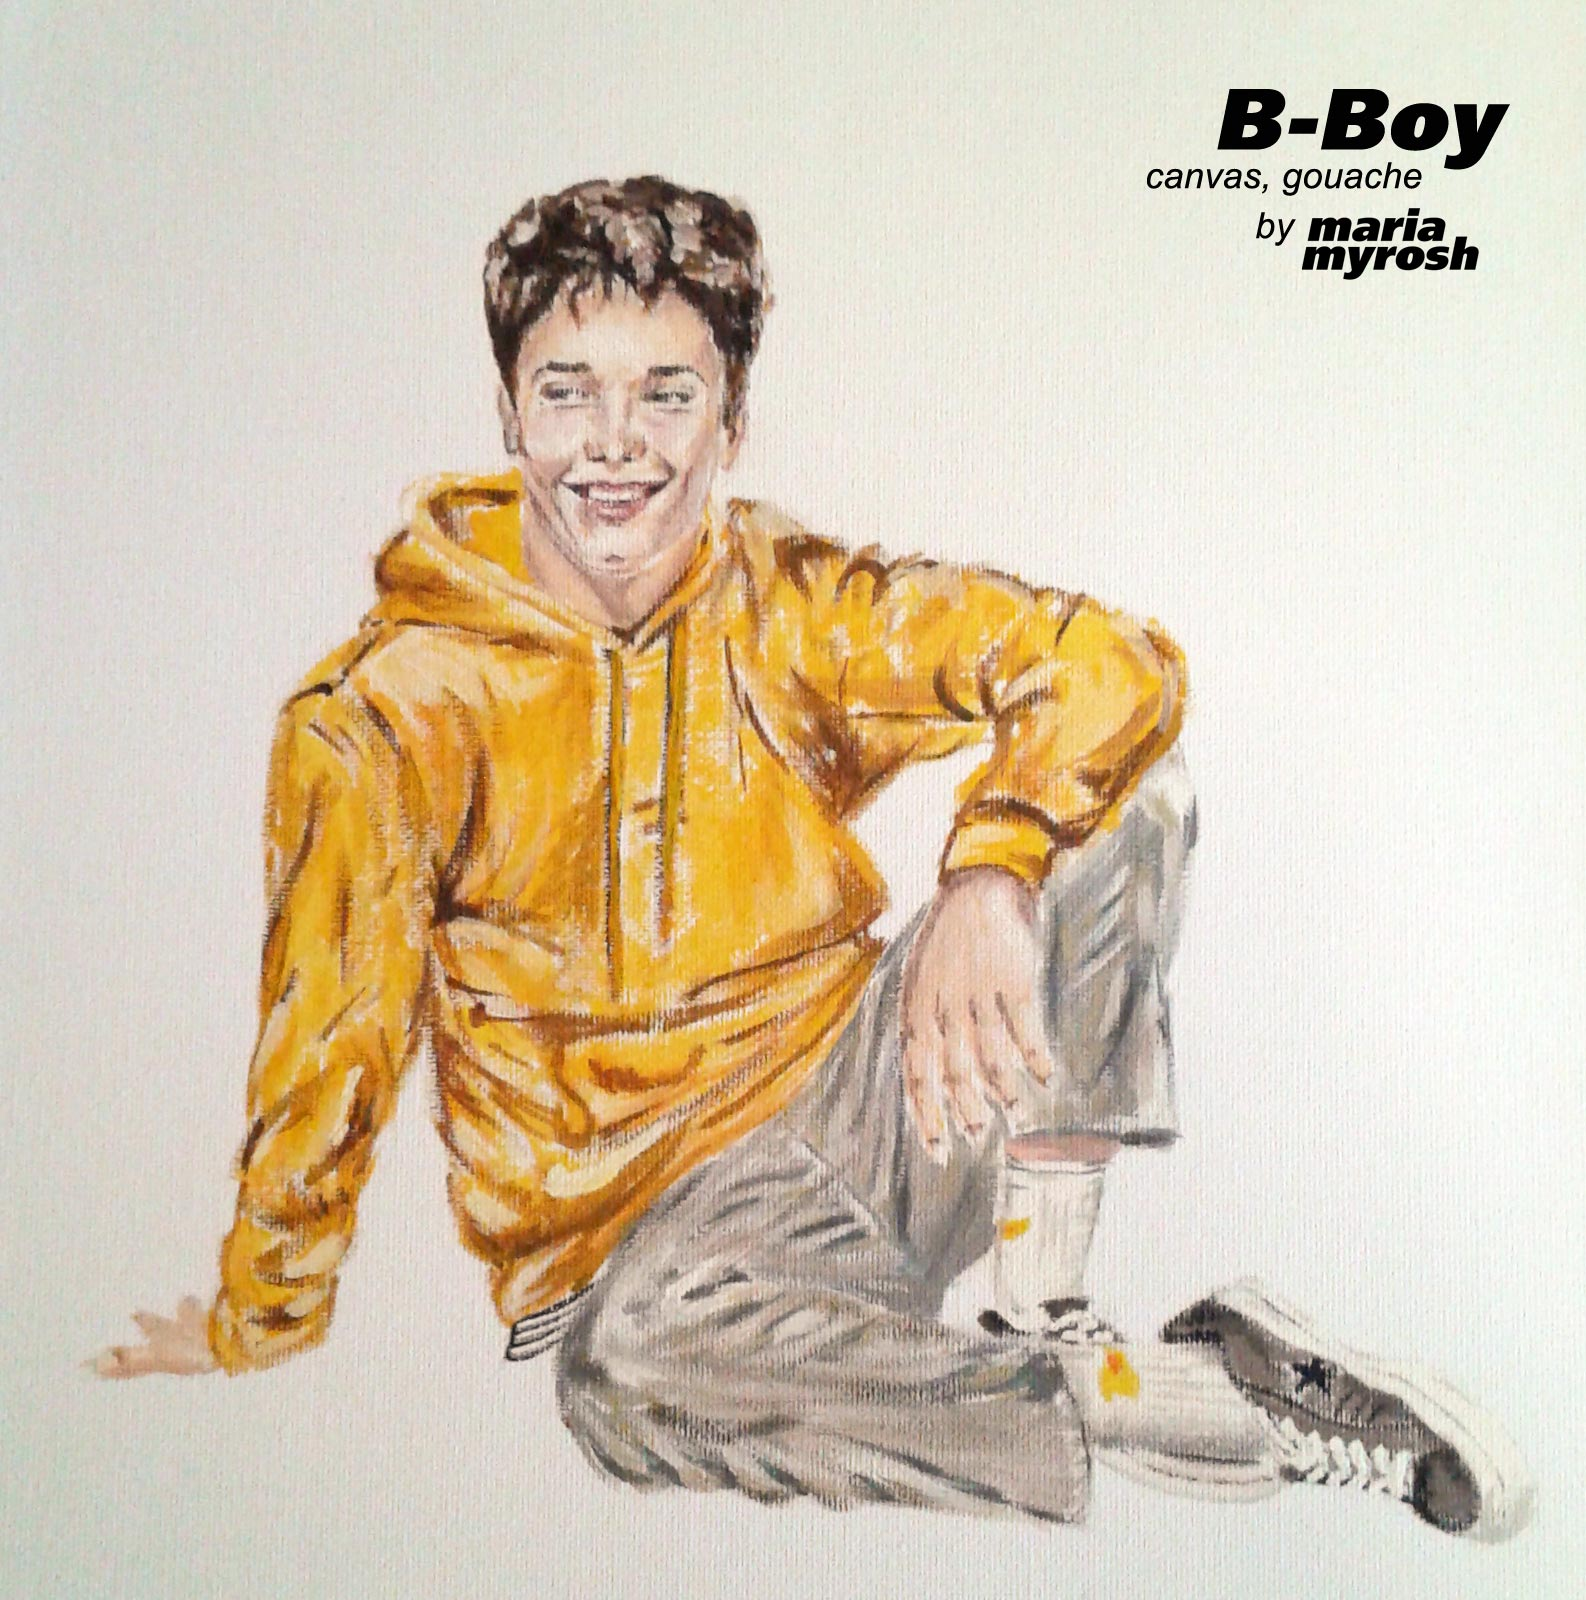 B-boy by Maria Myrosh